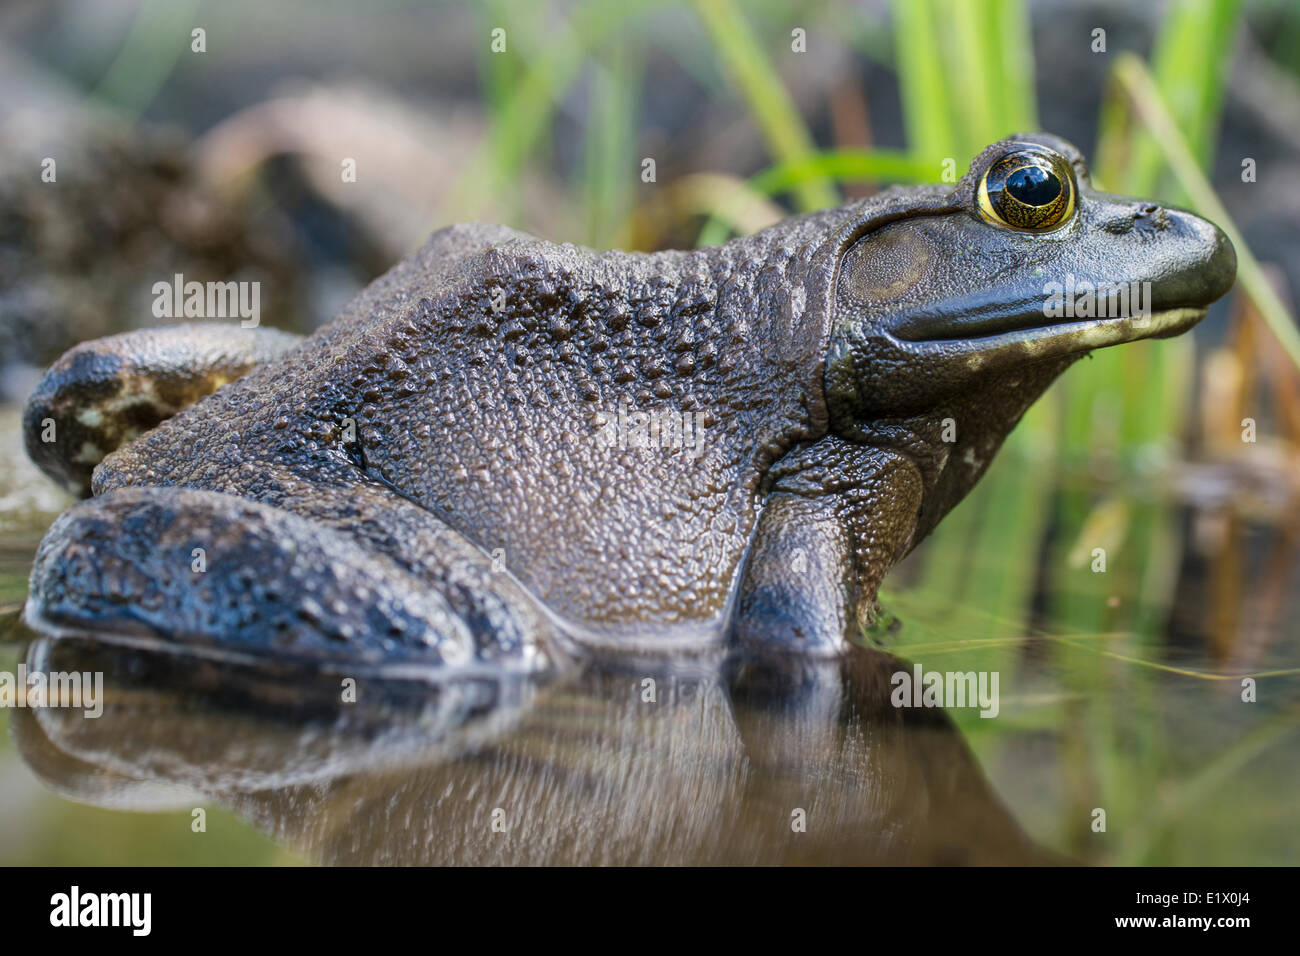 The green frog, Lithobates clamitans, is a species of frog native to the eastern half of the United States and Canada Stock Photo